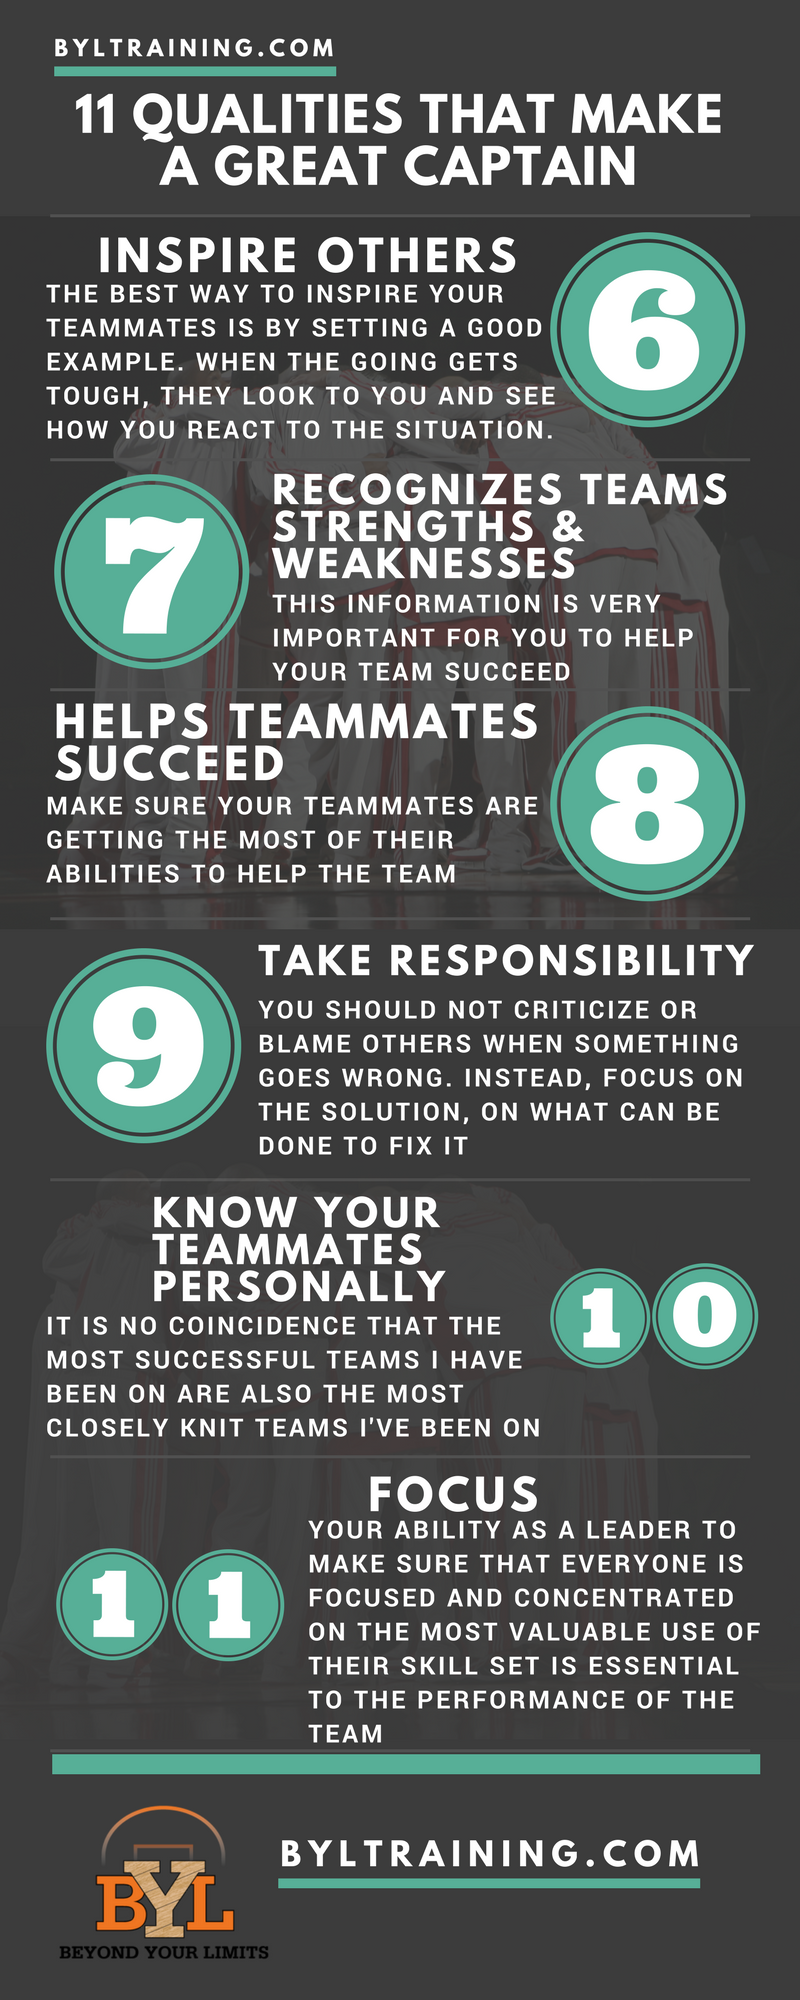 11 QUALITIES THAT MAKE A GREAT CAPTAIN (2).png